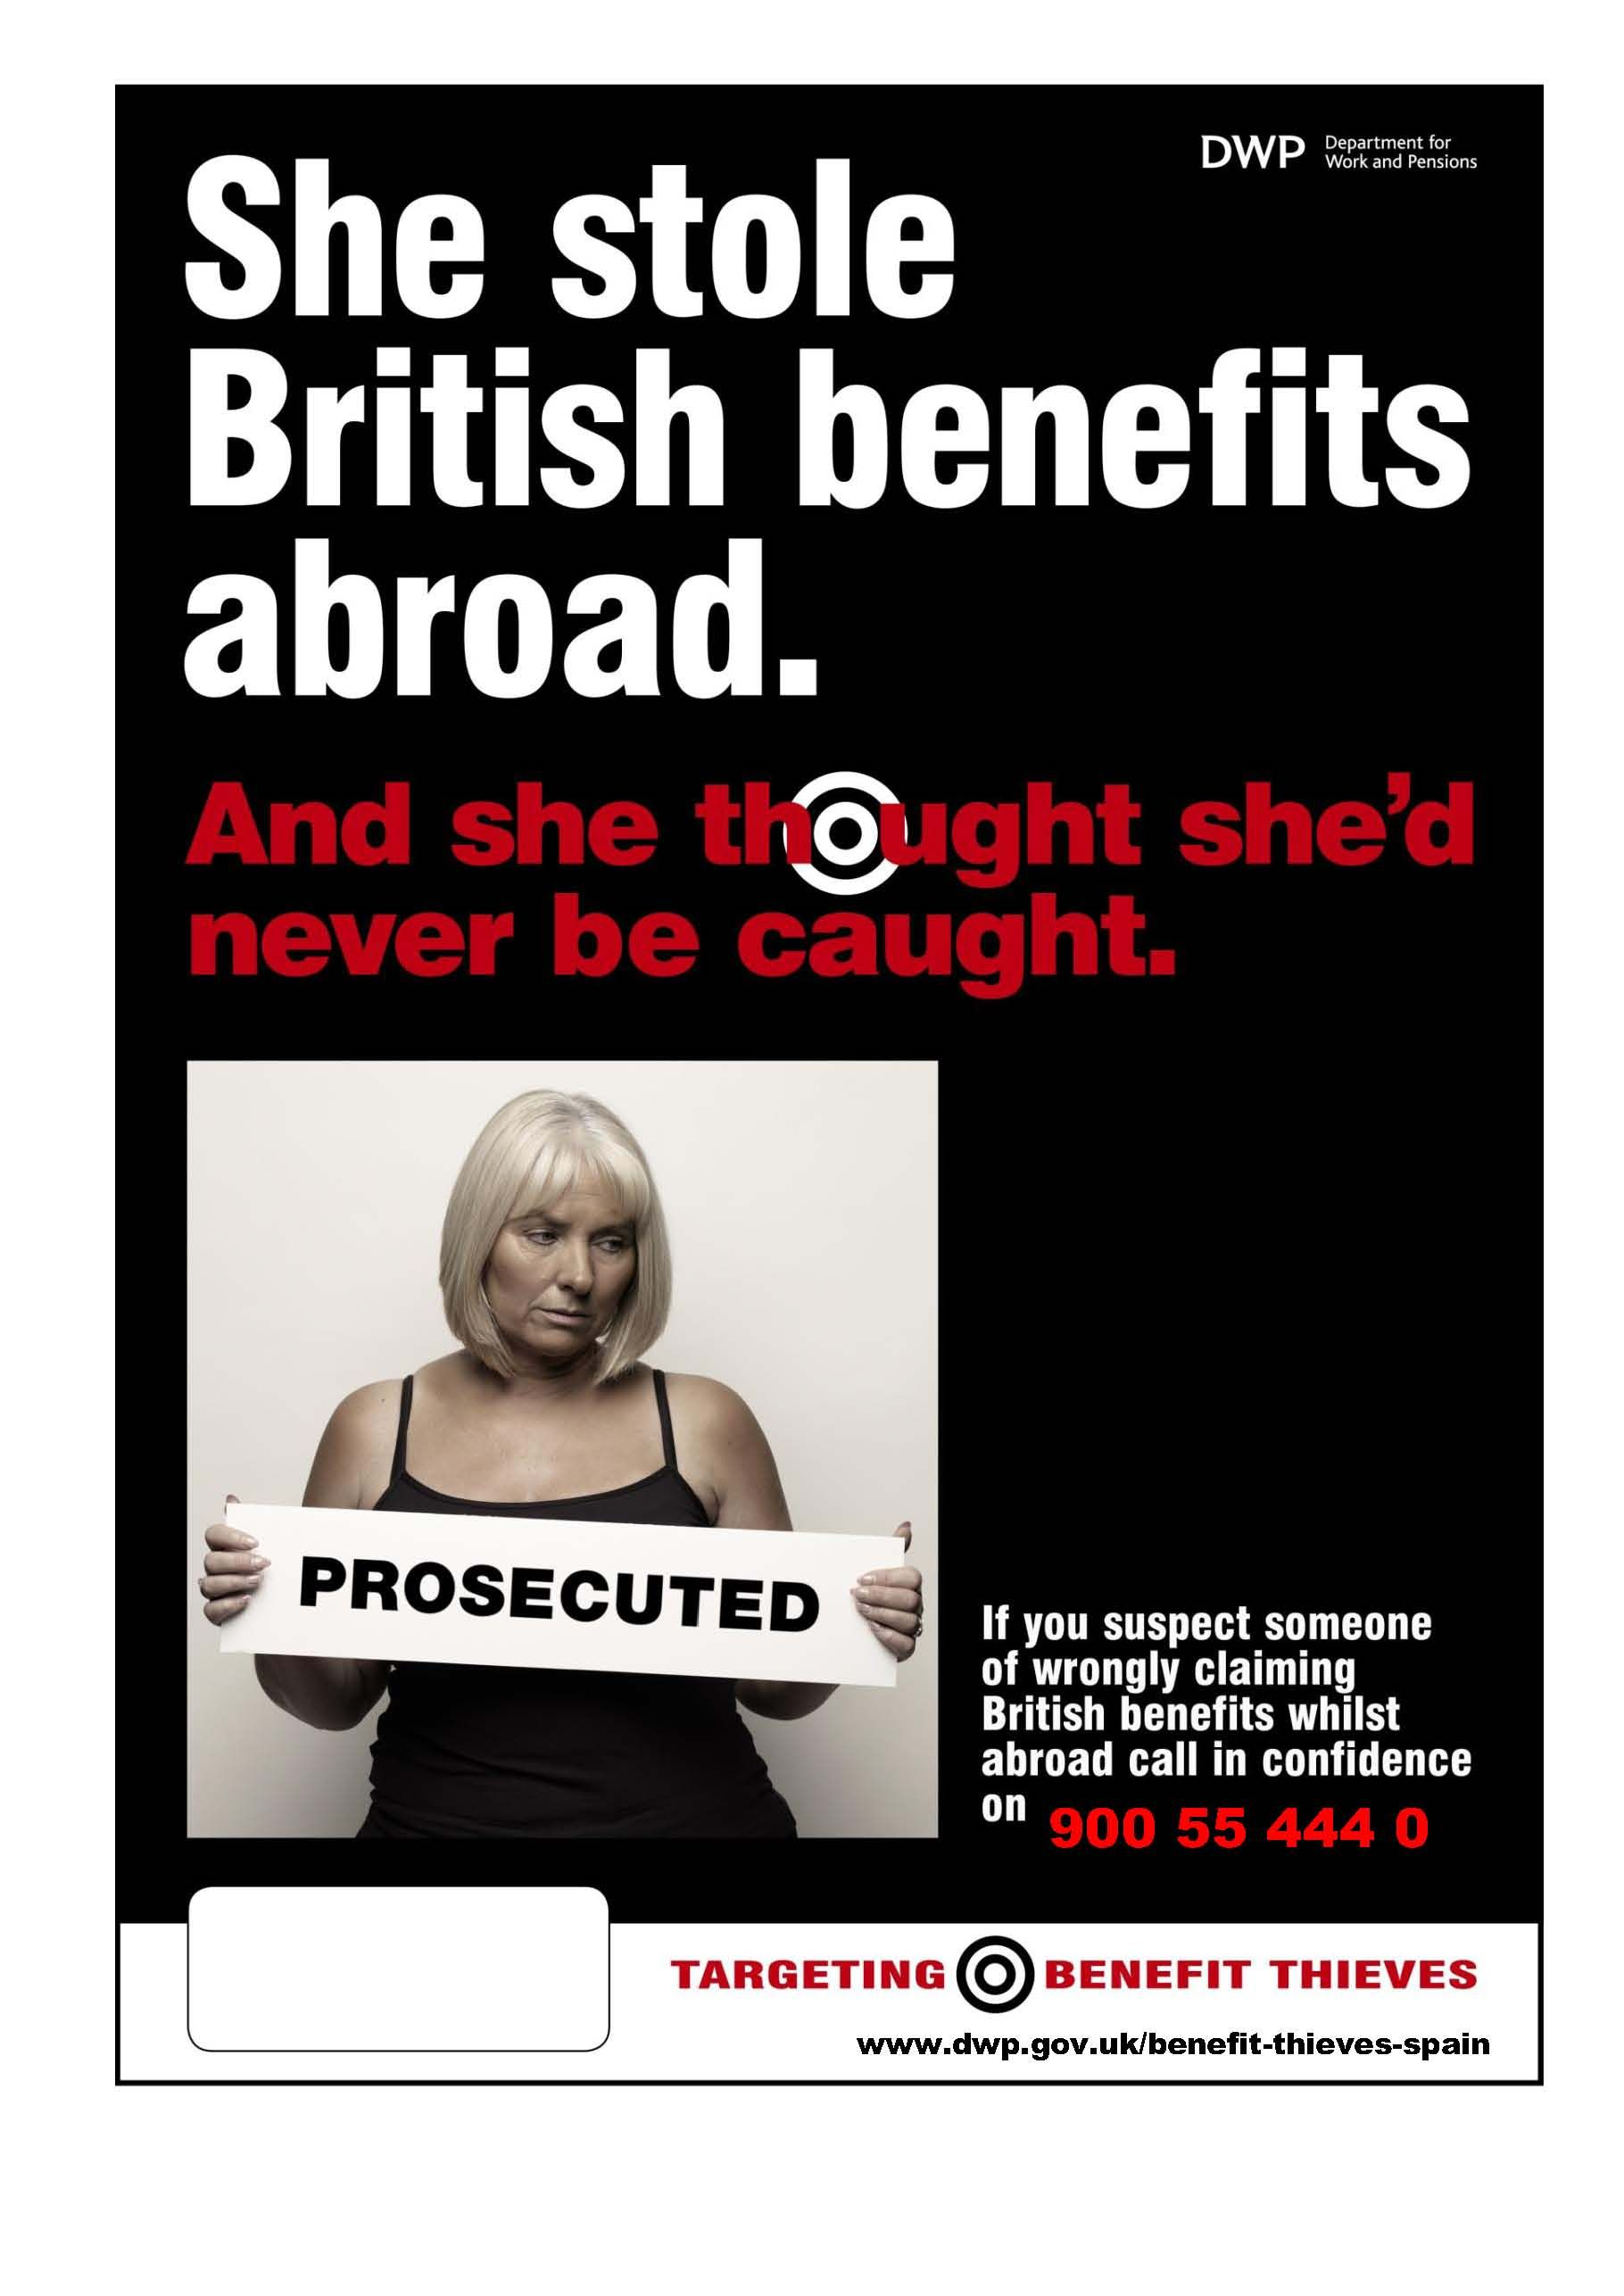 UK AND SPANISH AUTHORITIES JOIN FORCES TO SHARE INFORMATION ON UK BENEFIT FRAUDSTERS IN SPAIN